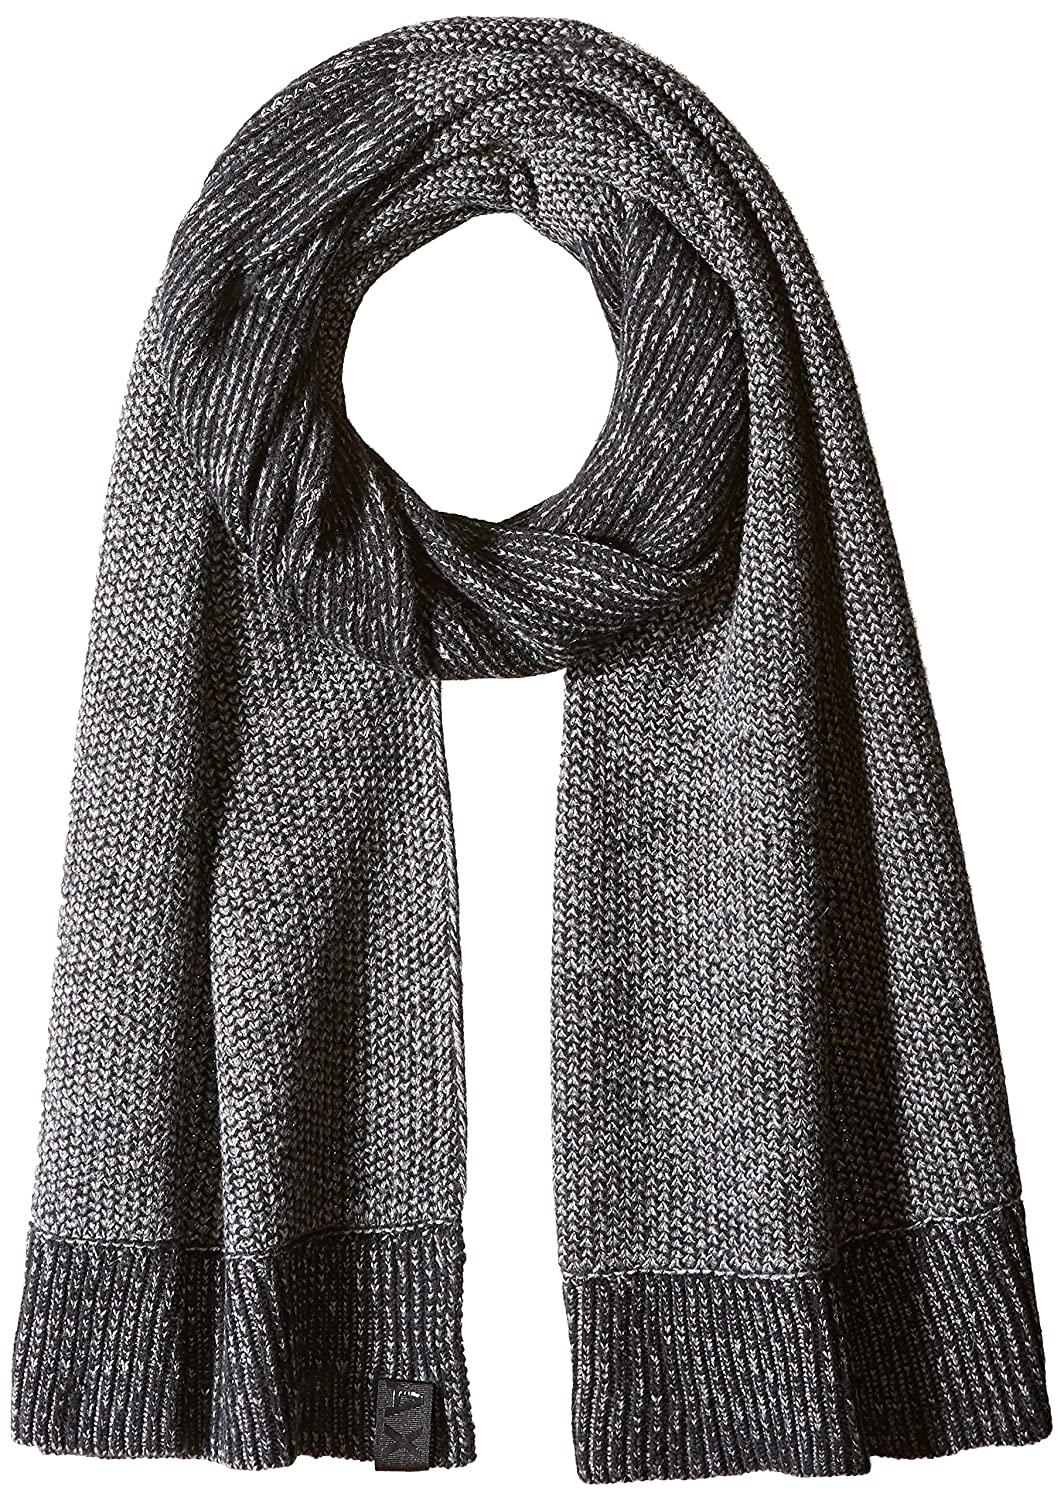 Armani Exchange Men's Two Tone Textured Knit Scarf Black/Charcoal One Size 6YZ475ZMJ2Z0258